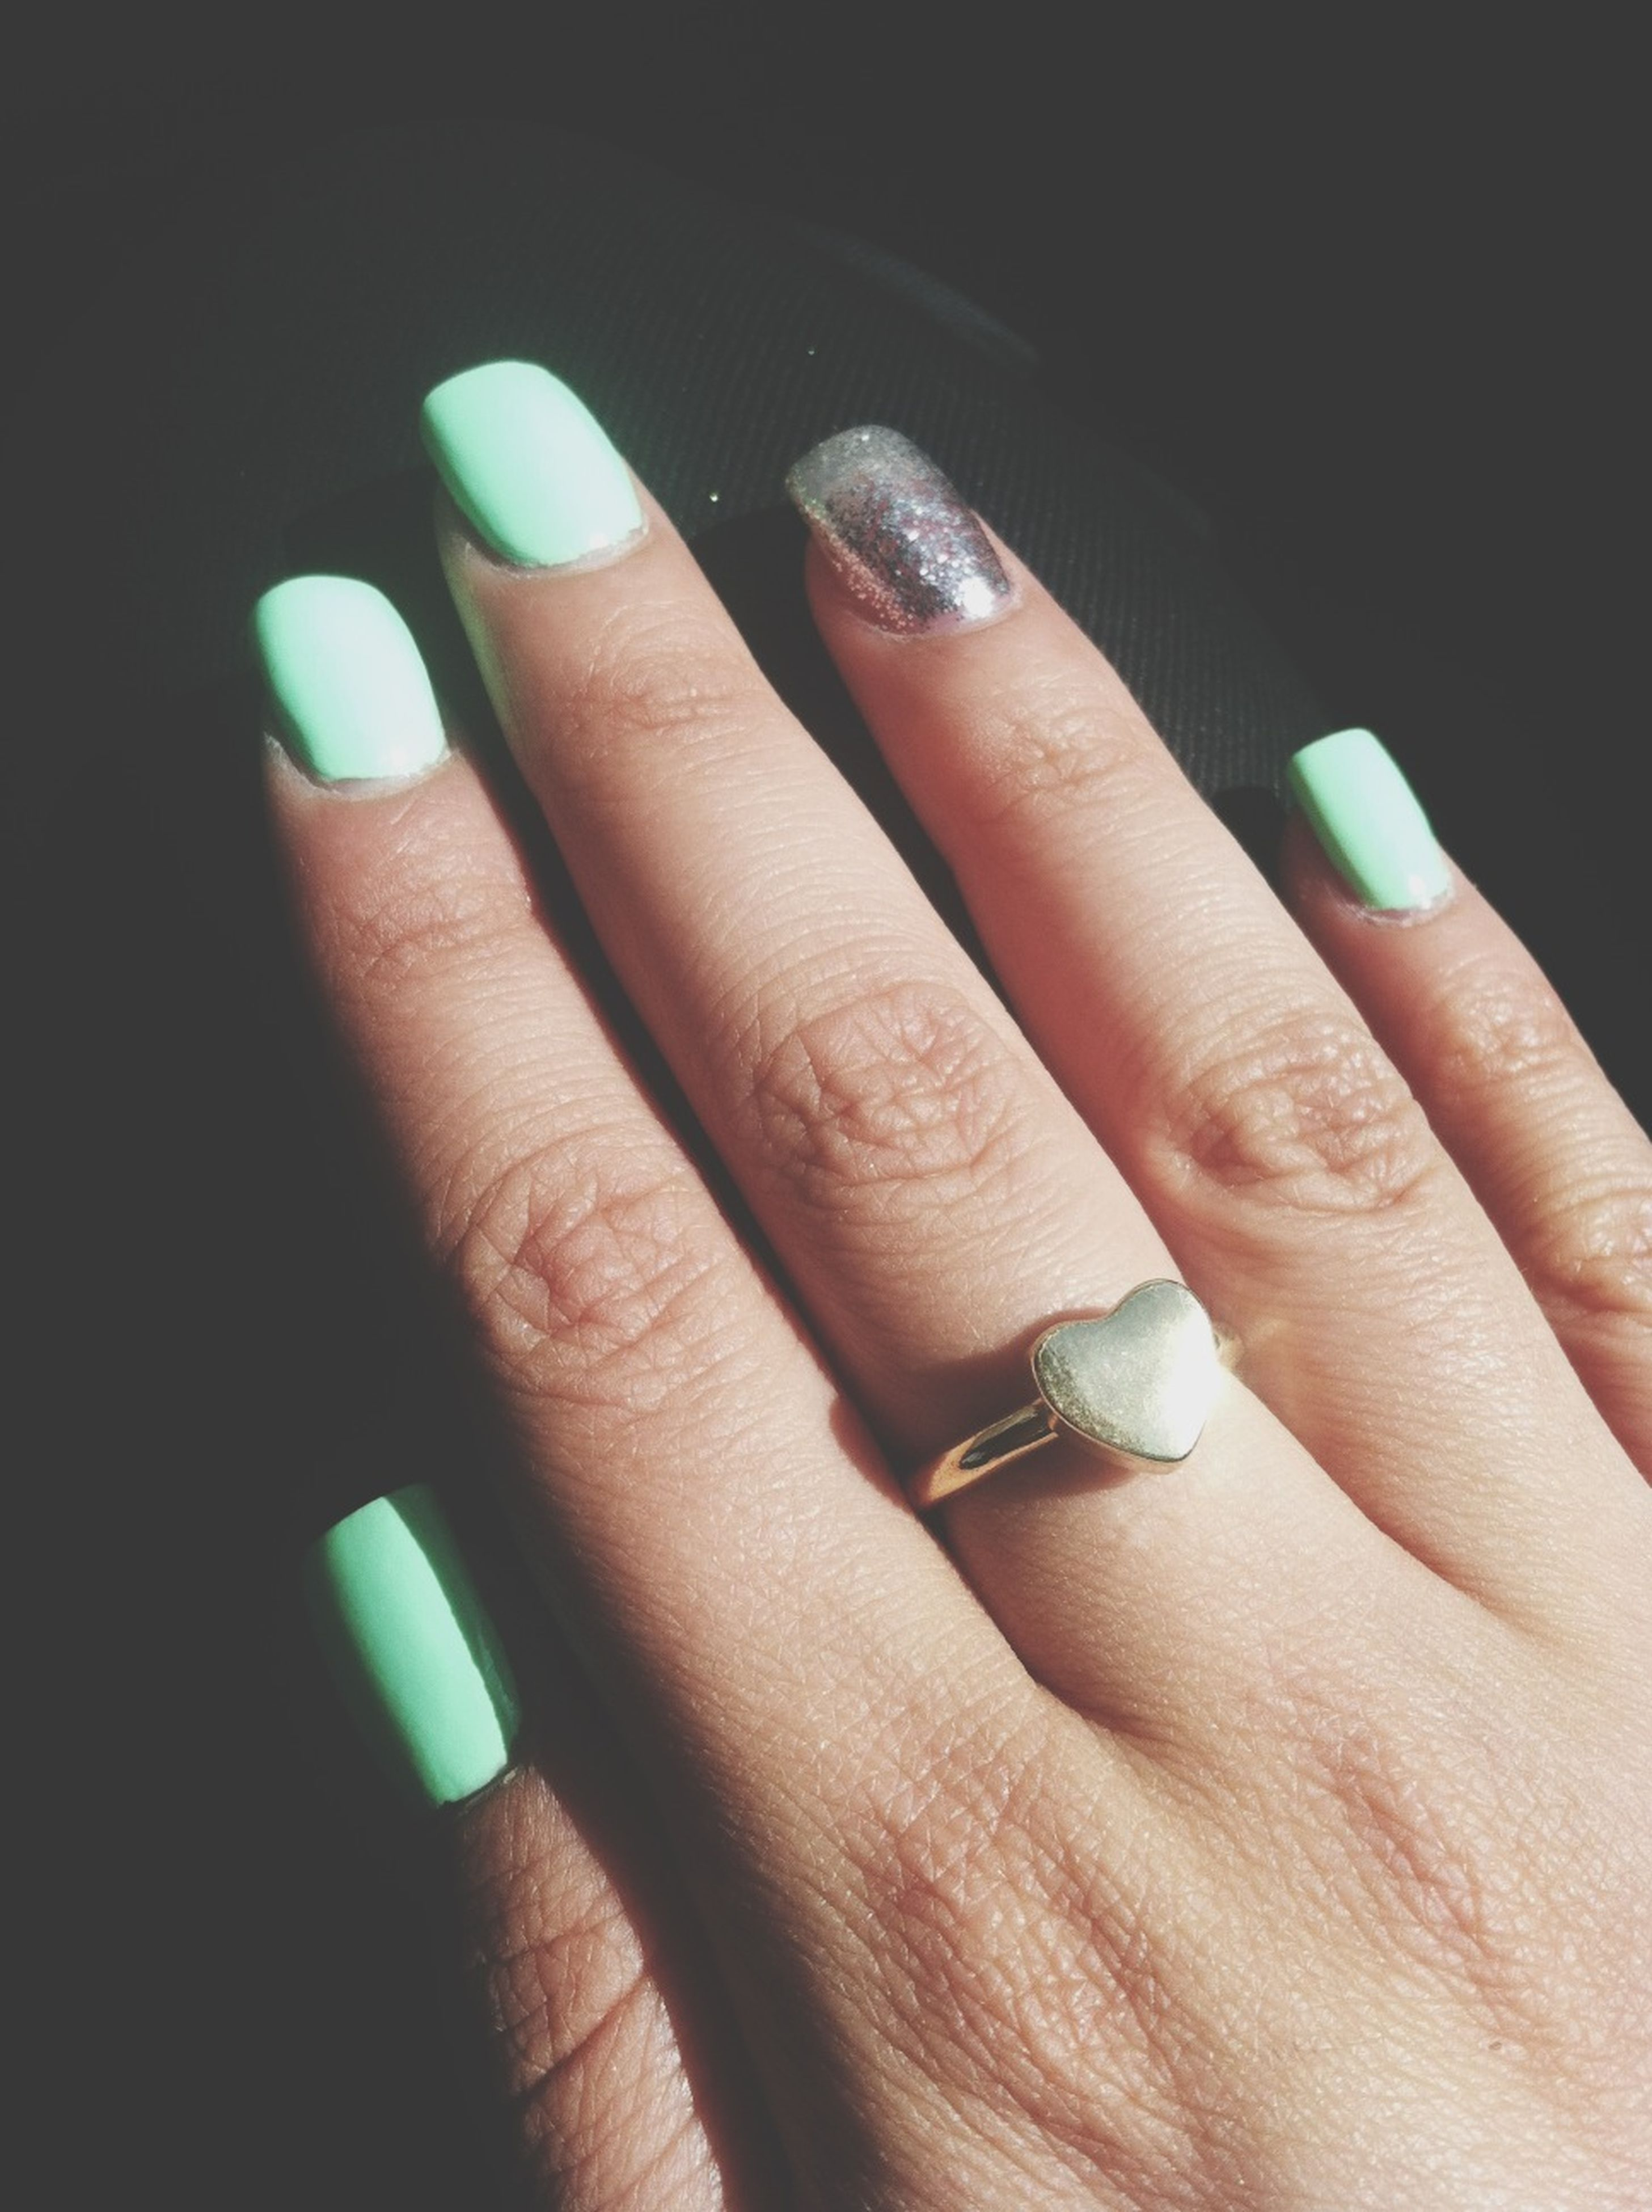 person, part of, holding, human finger, cropped, close-up, indoors, unrecognizable person, personal perspective, studio shot, lifestyles, black background, showing, nail polish, ring, leisure activity, men